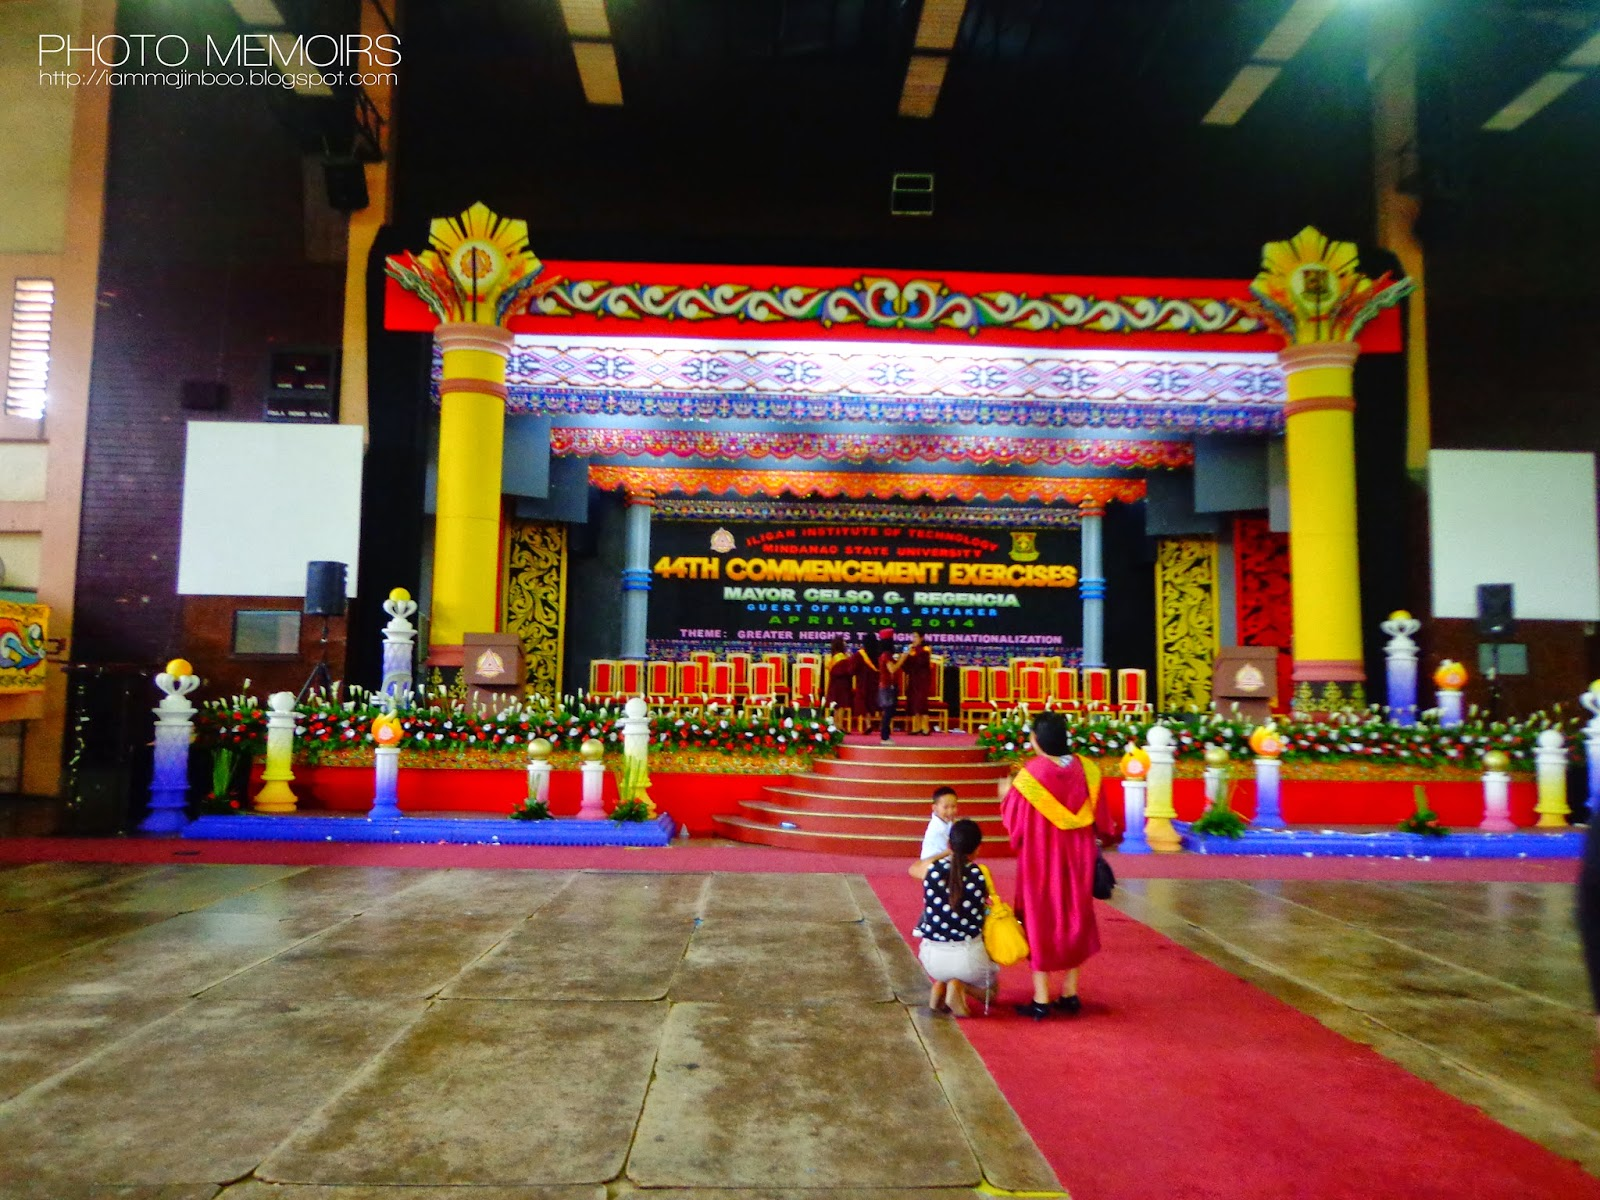 MSU-IIT 44th Commencement Exercise (April)